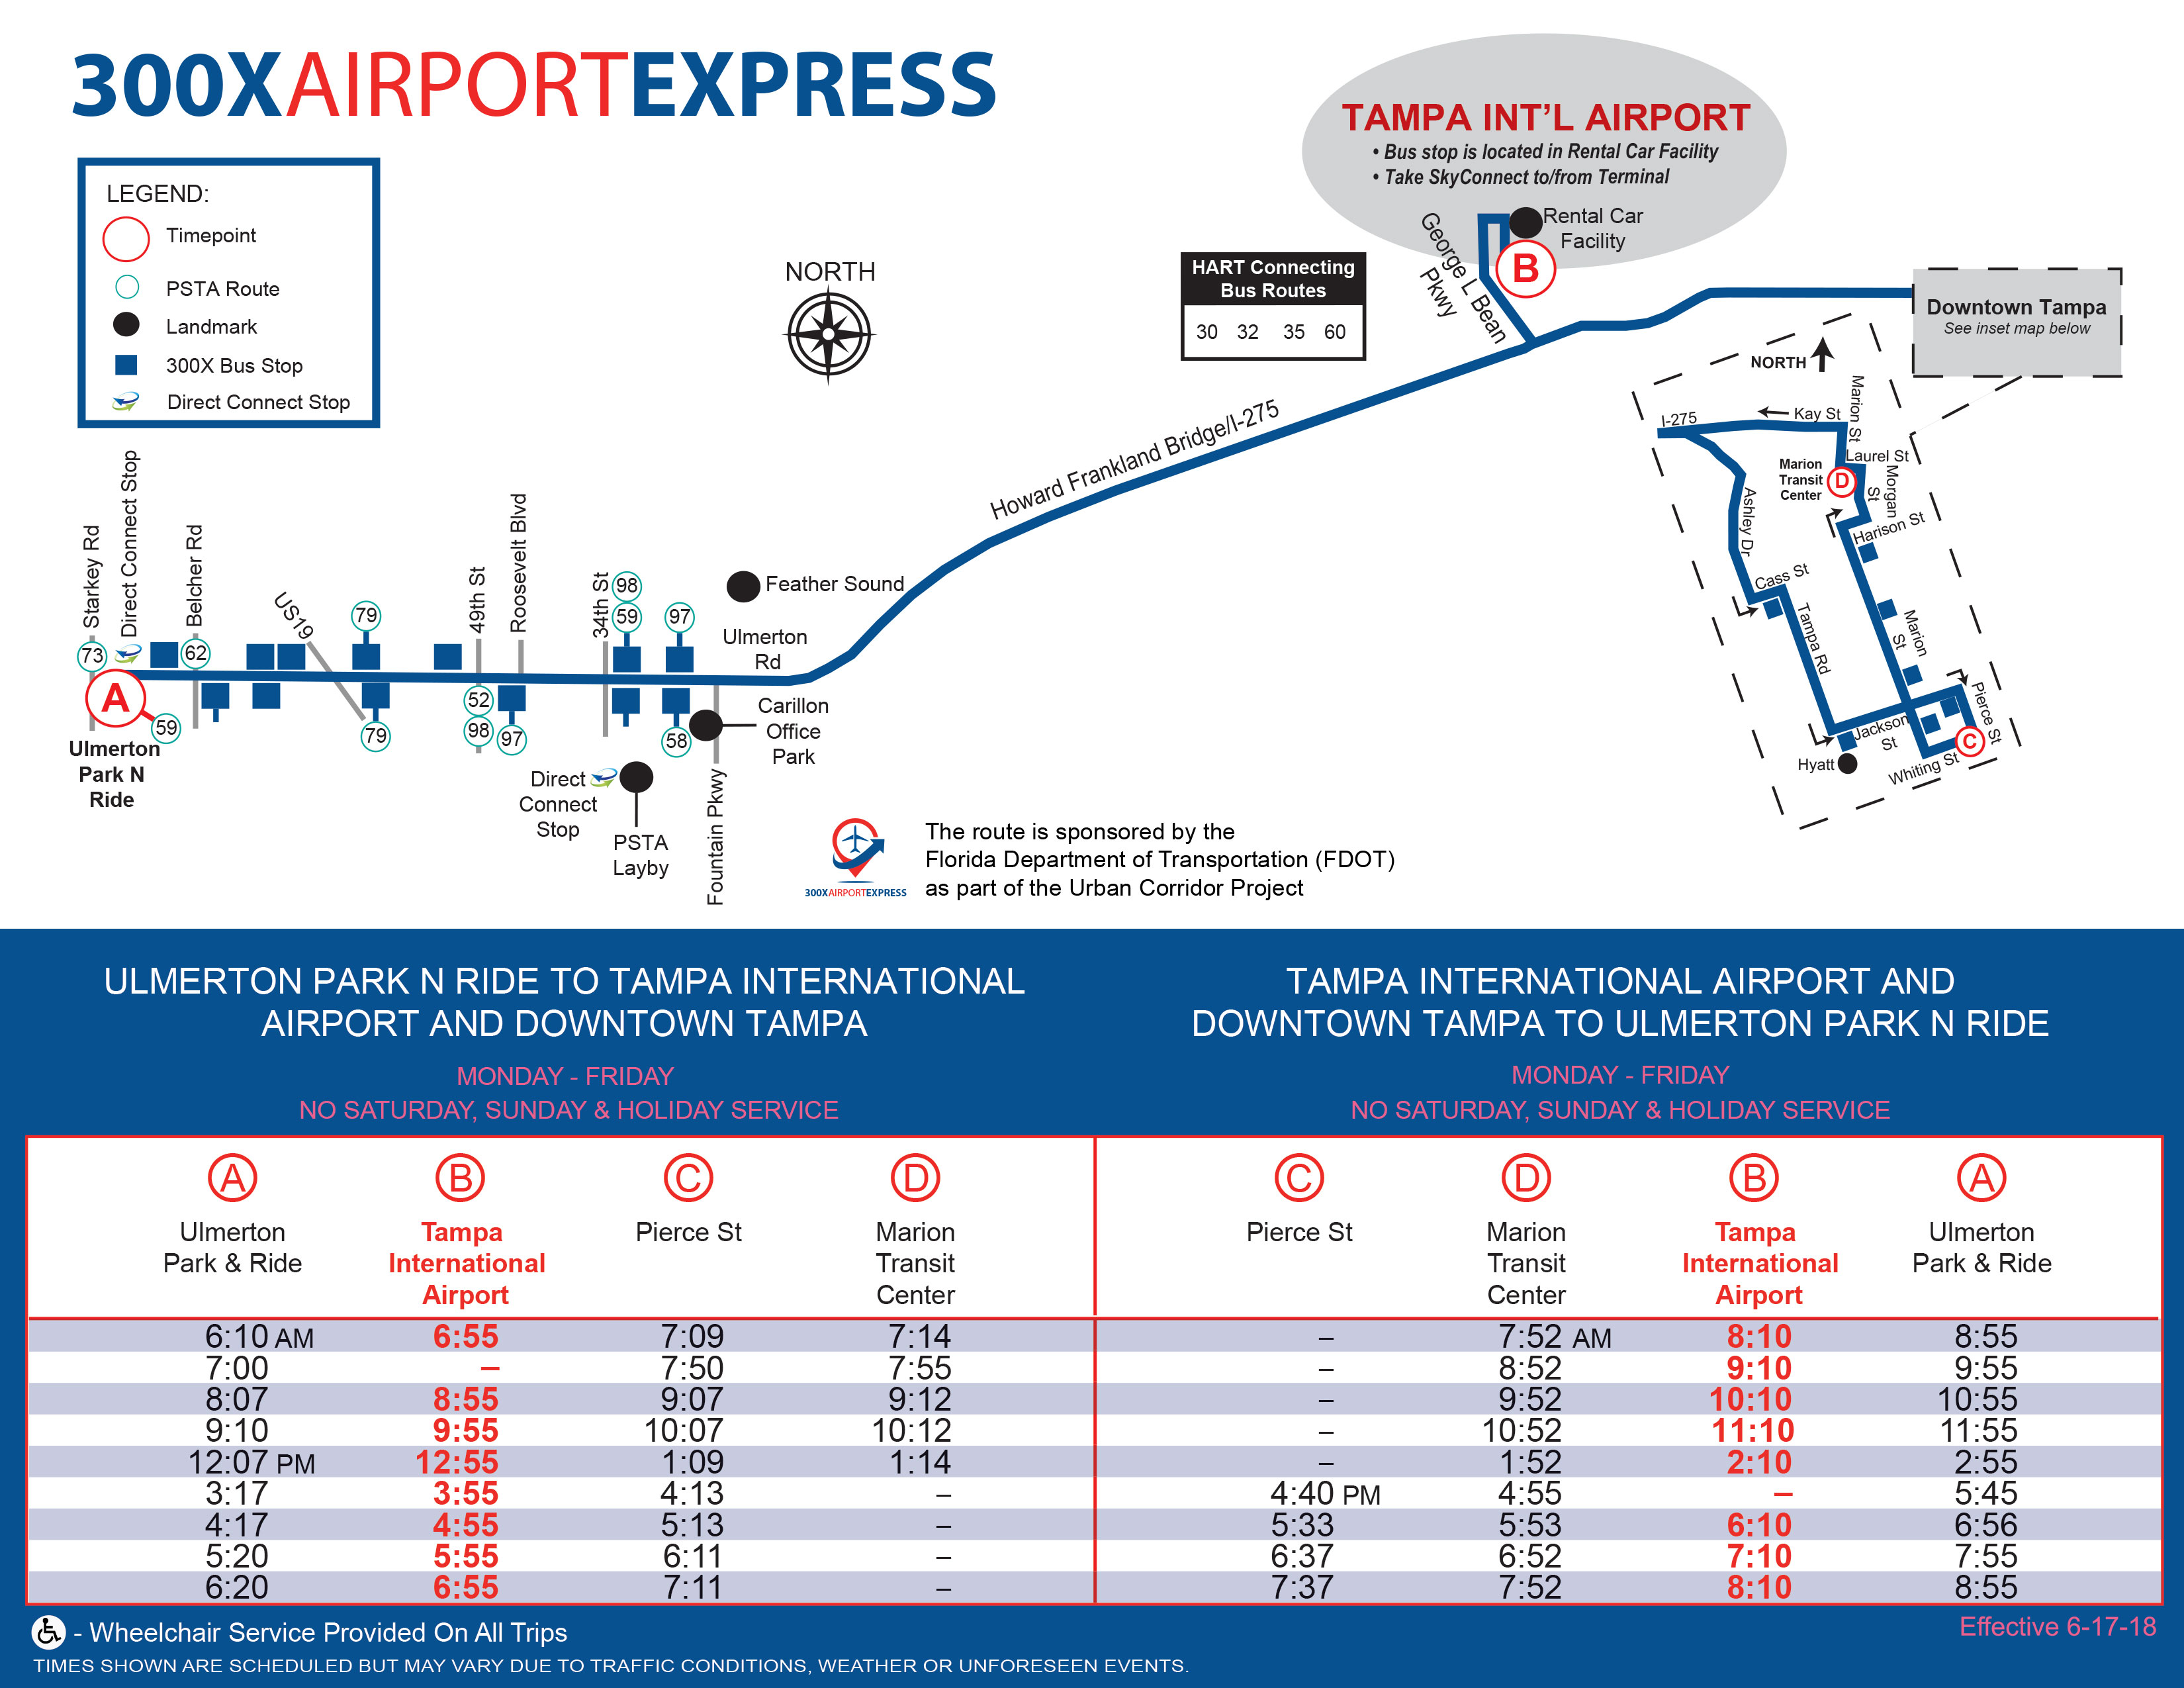 300X Airport Express Schedule